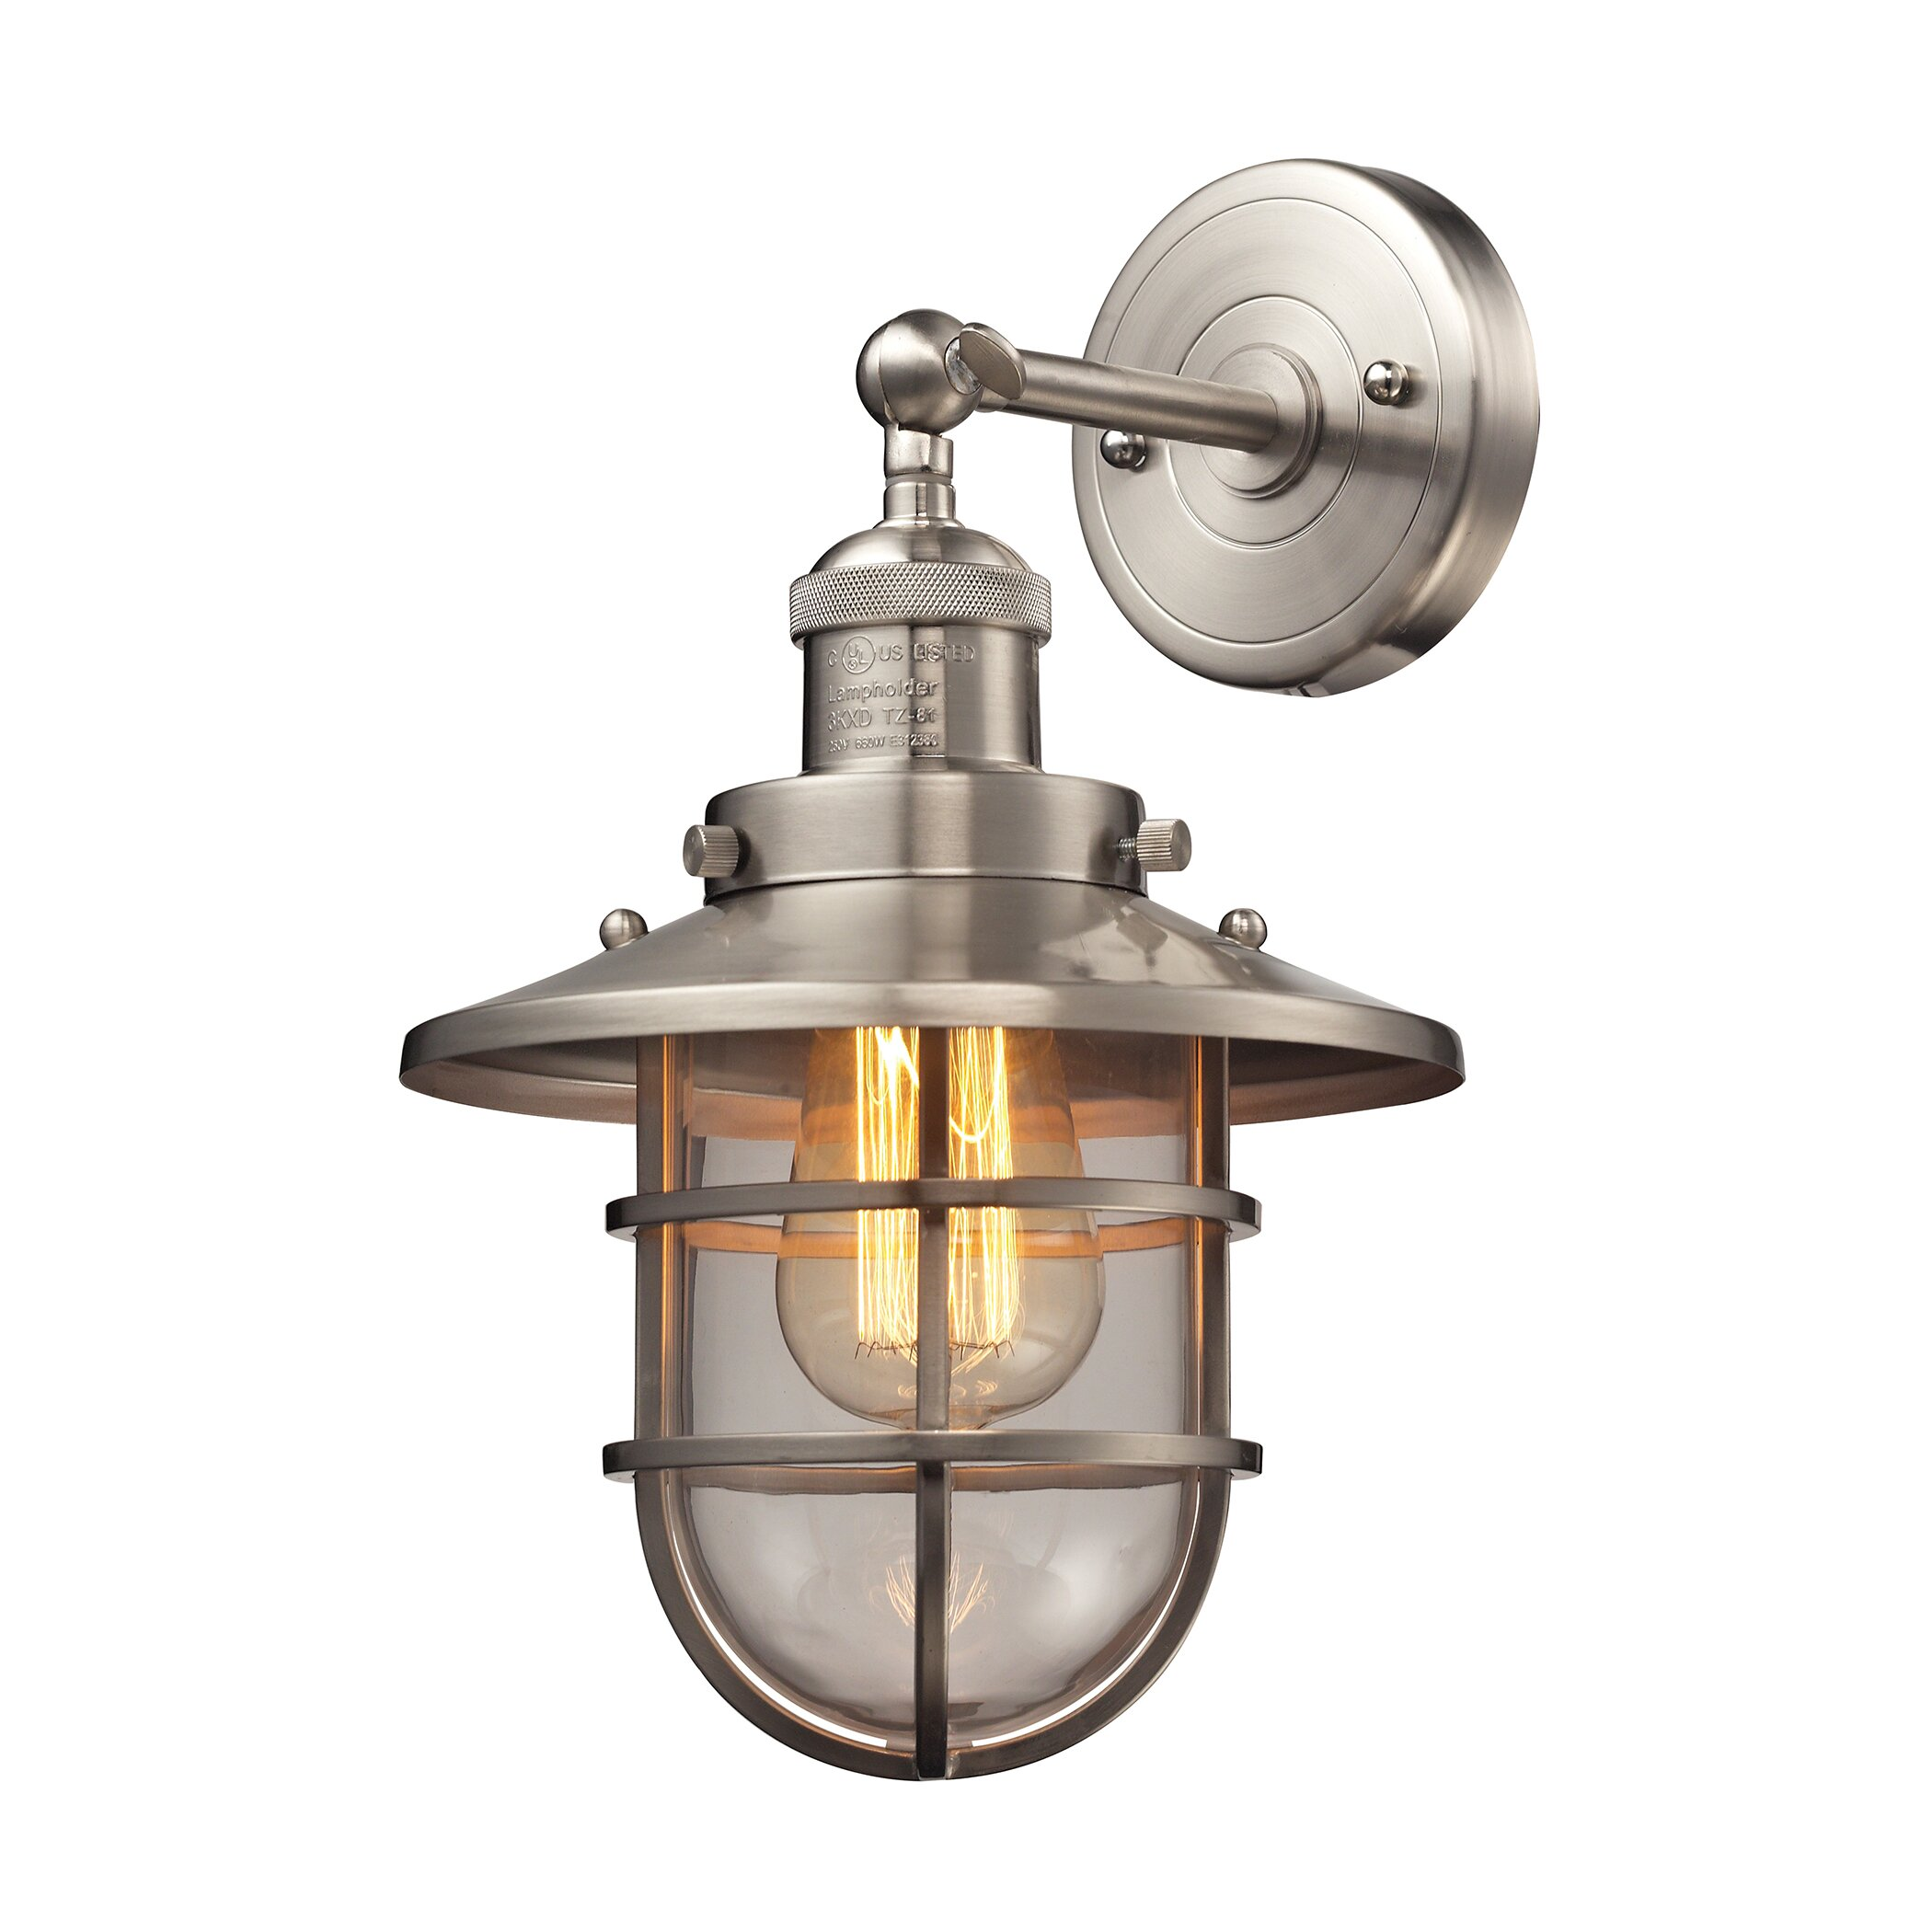 Wall Sconce With Magnifying Glass : Breakwater Bay Davidson 1 Light Wall Sconce & Reviews Wayfair